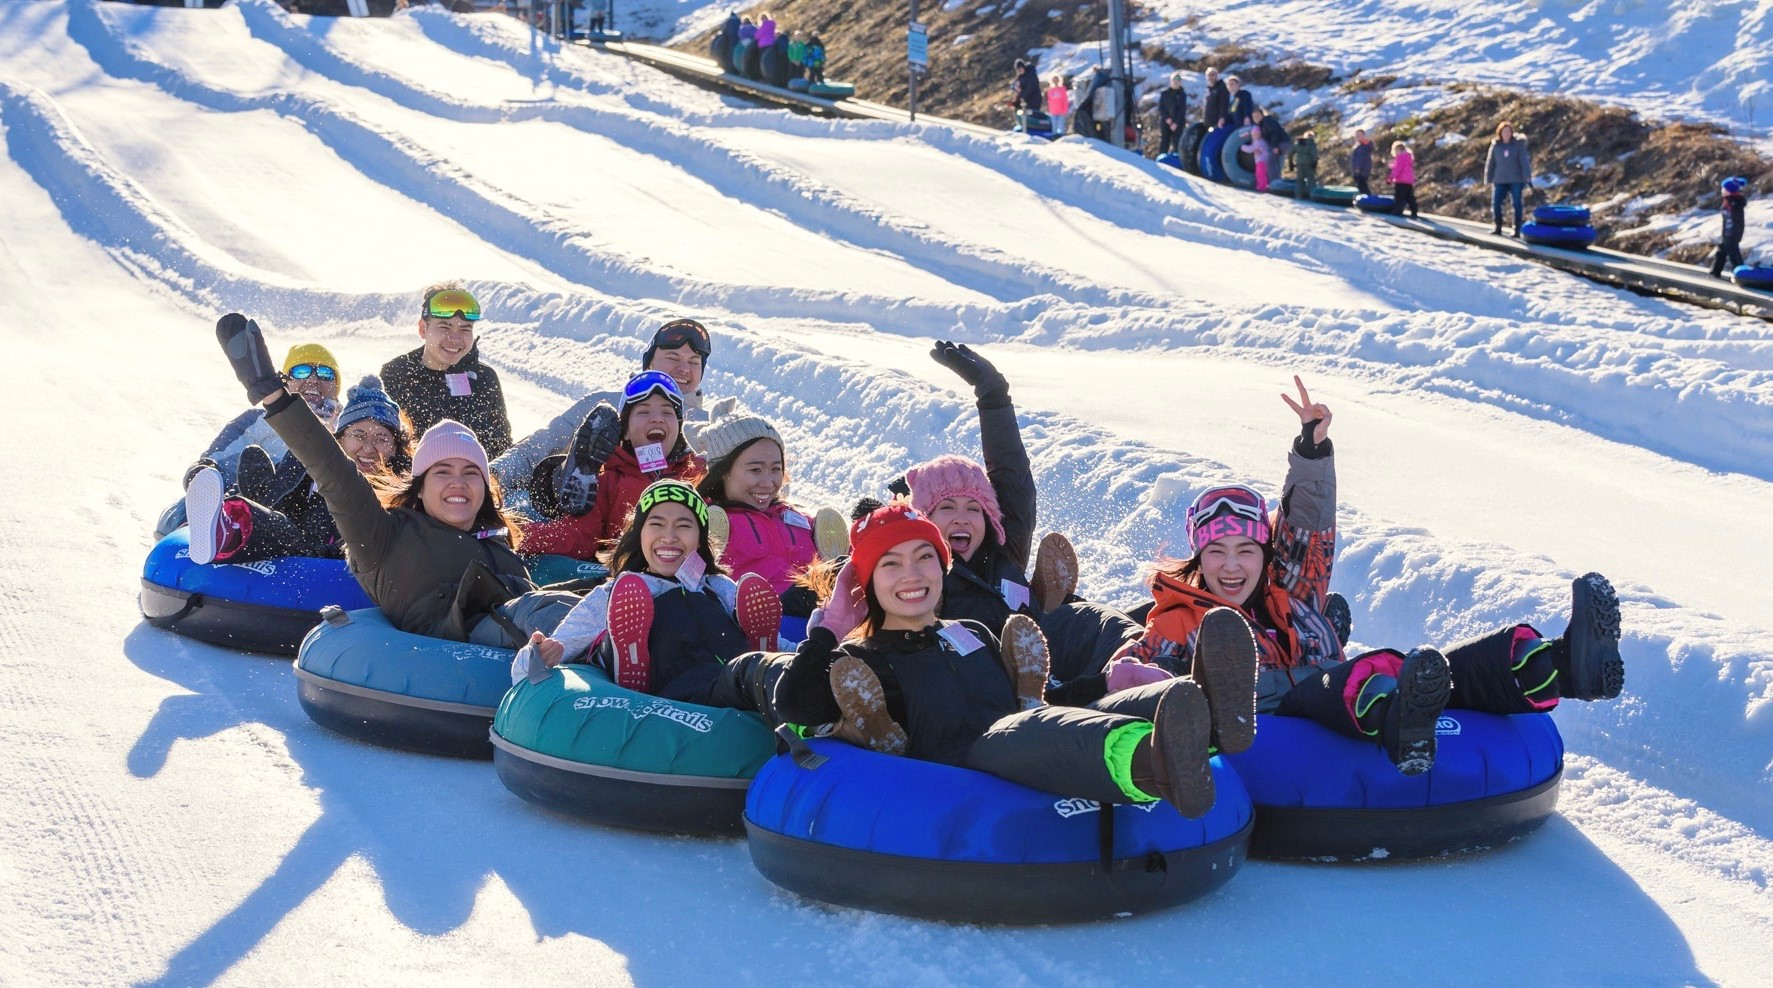 Group of people in snow tubes going down a snowy hill at Snow Trails